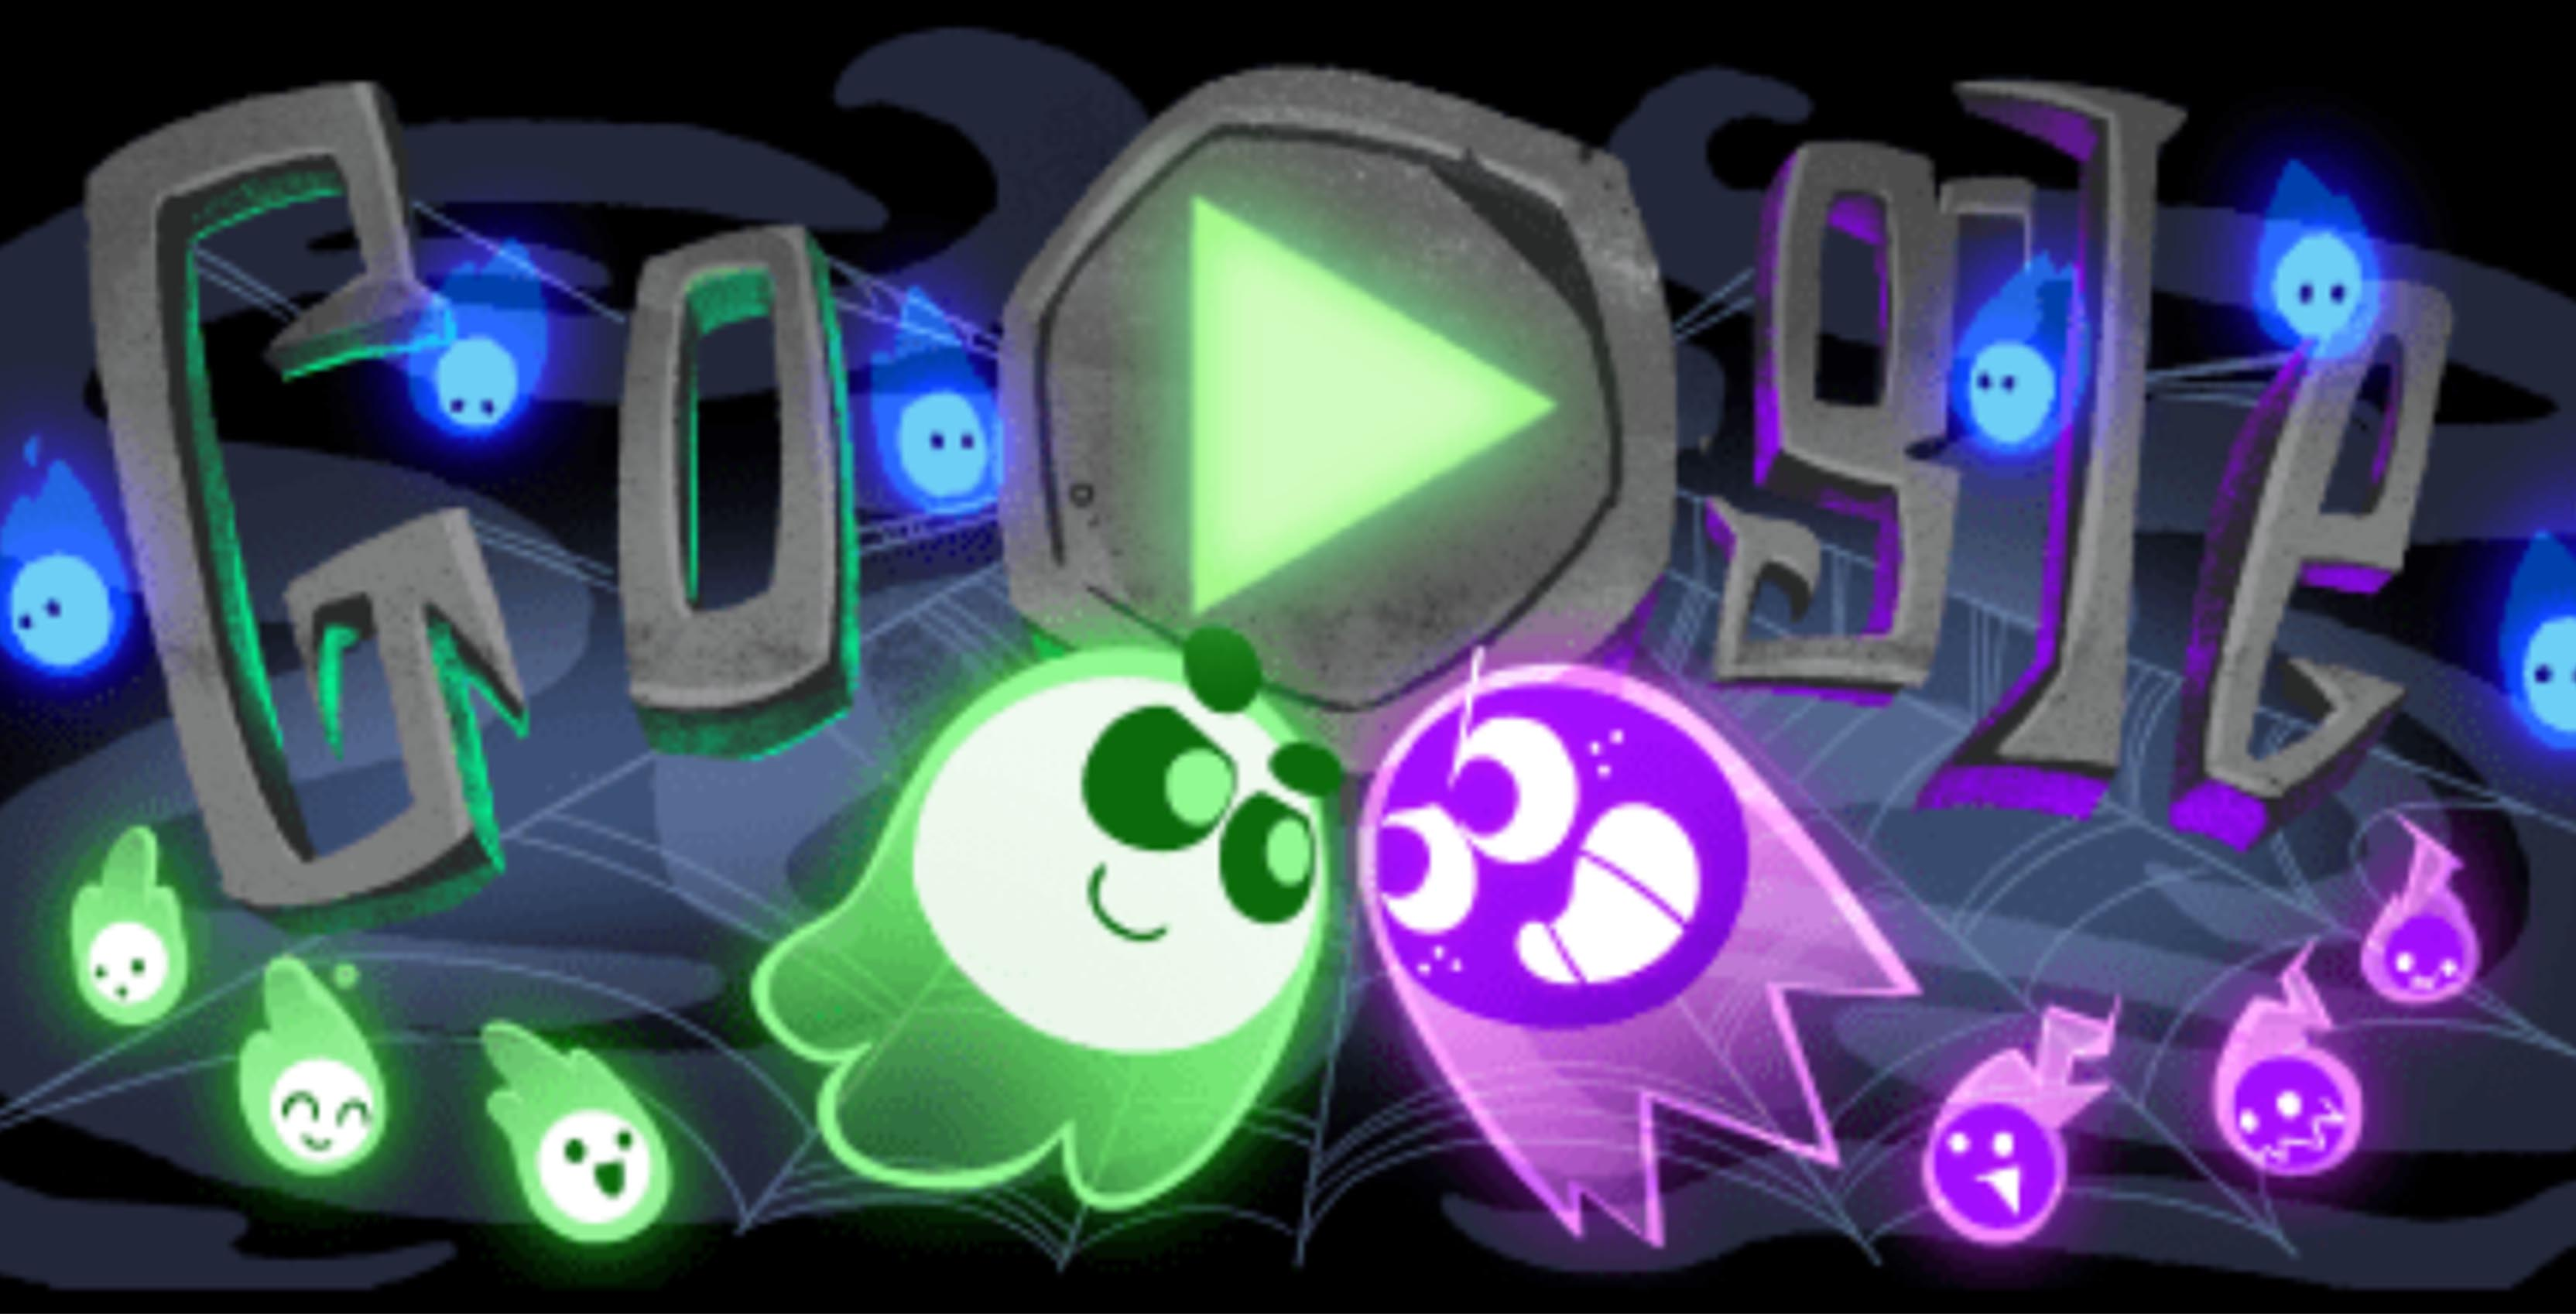 Today's Google Doodle is a Halloween-themed multiplayer game